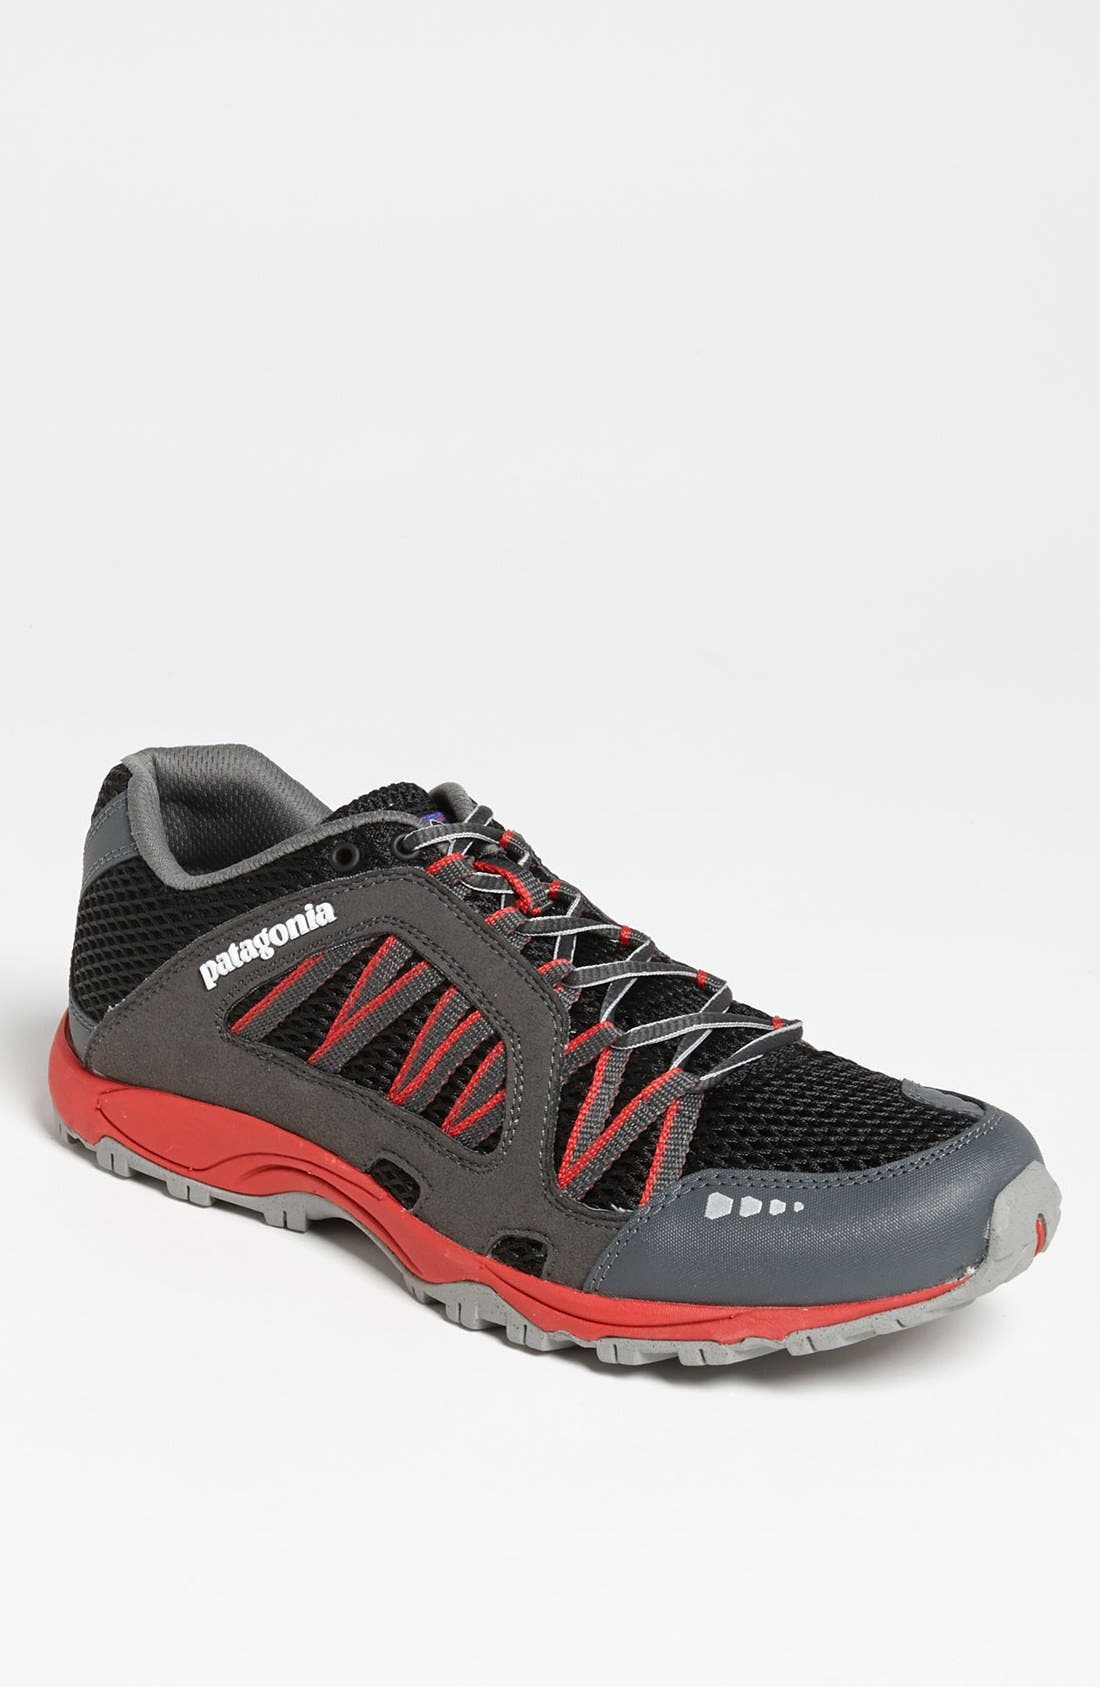 Main Image - Patagonia 'Fore Runner' Trail Running Shoe (Men)